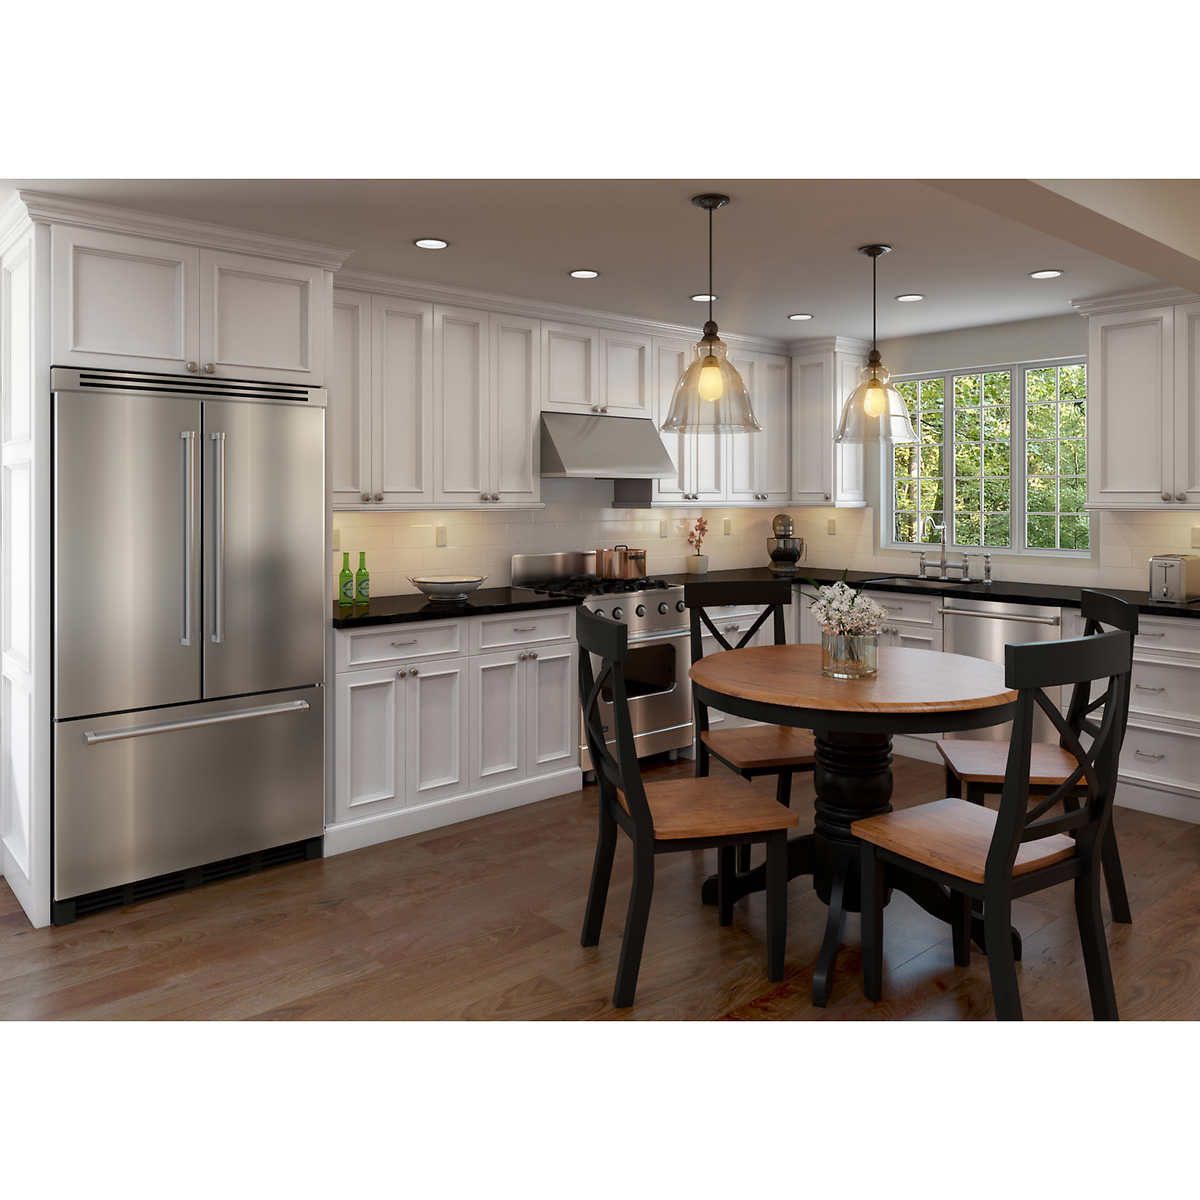 Foremost Custom Designed Kitchen Cabinets